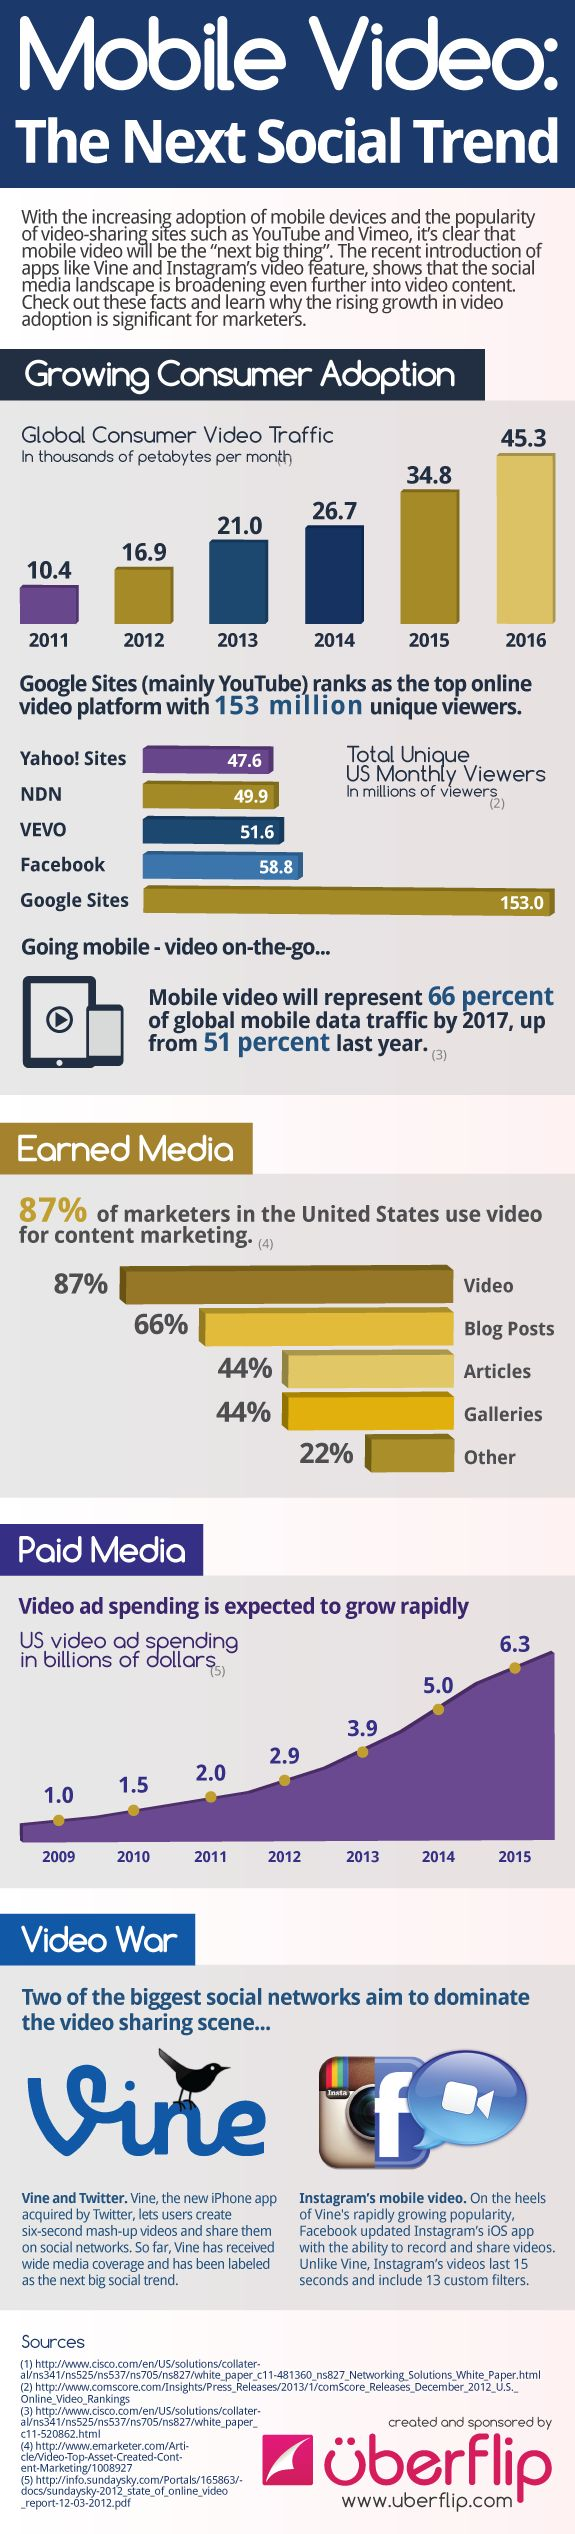 29 best images about Videos - Private Schools on Pinterest ...